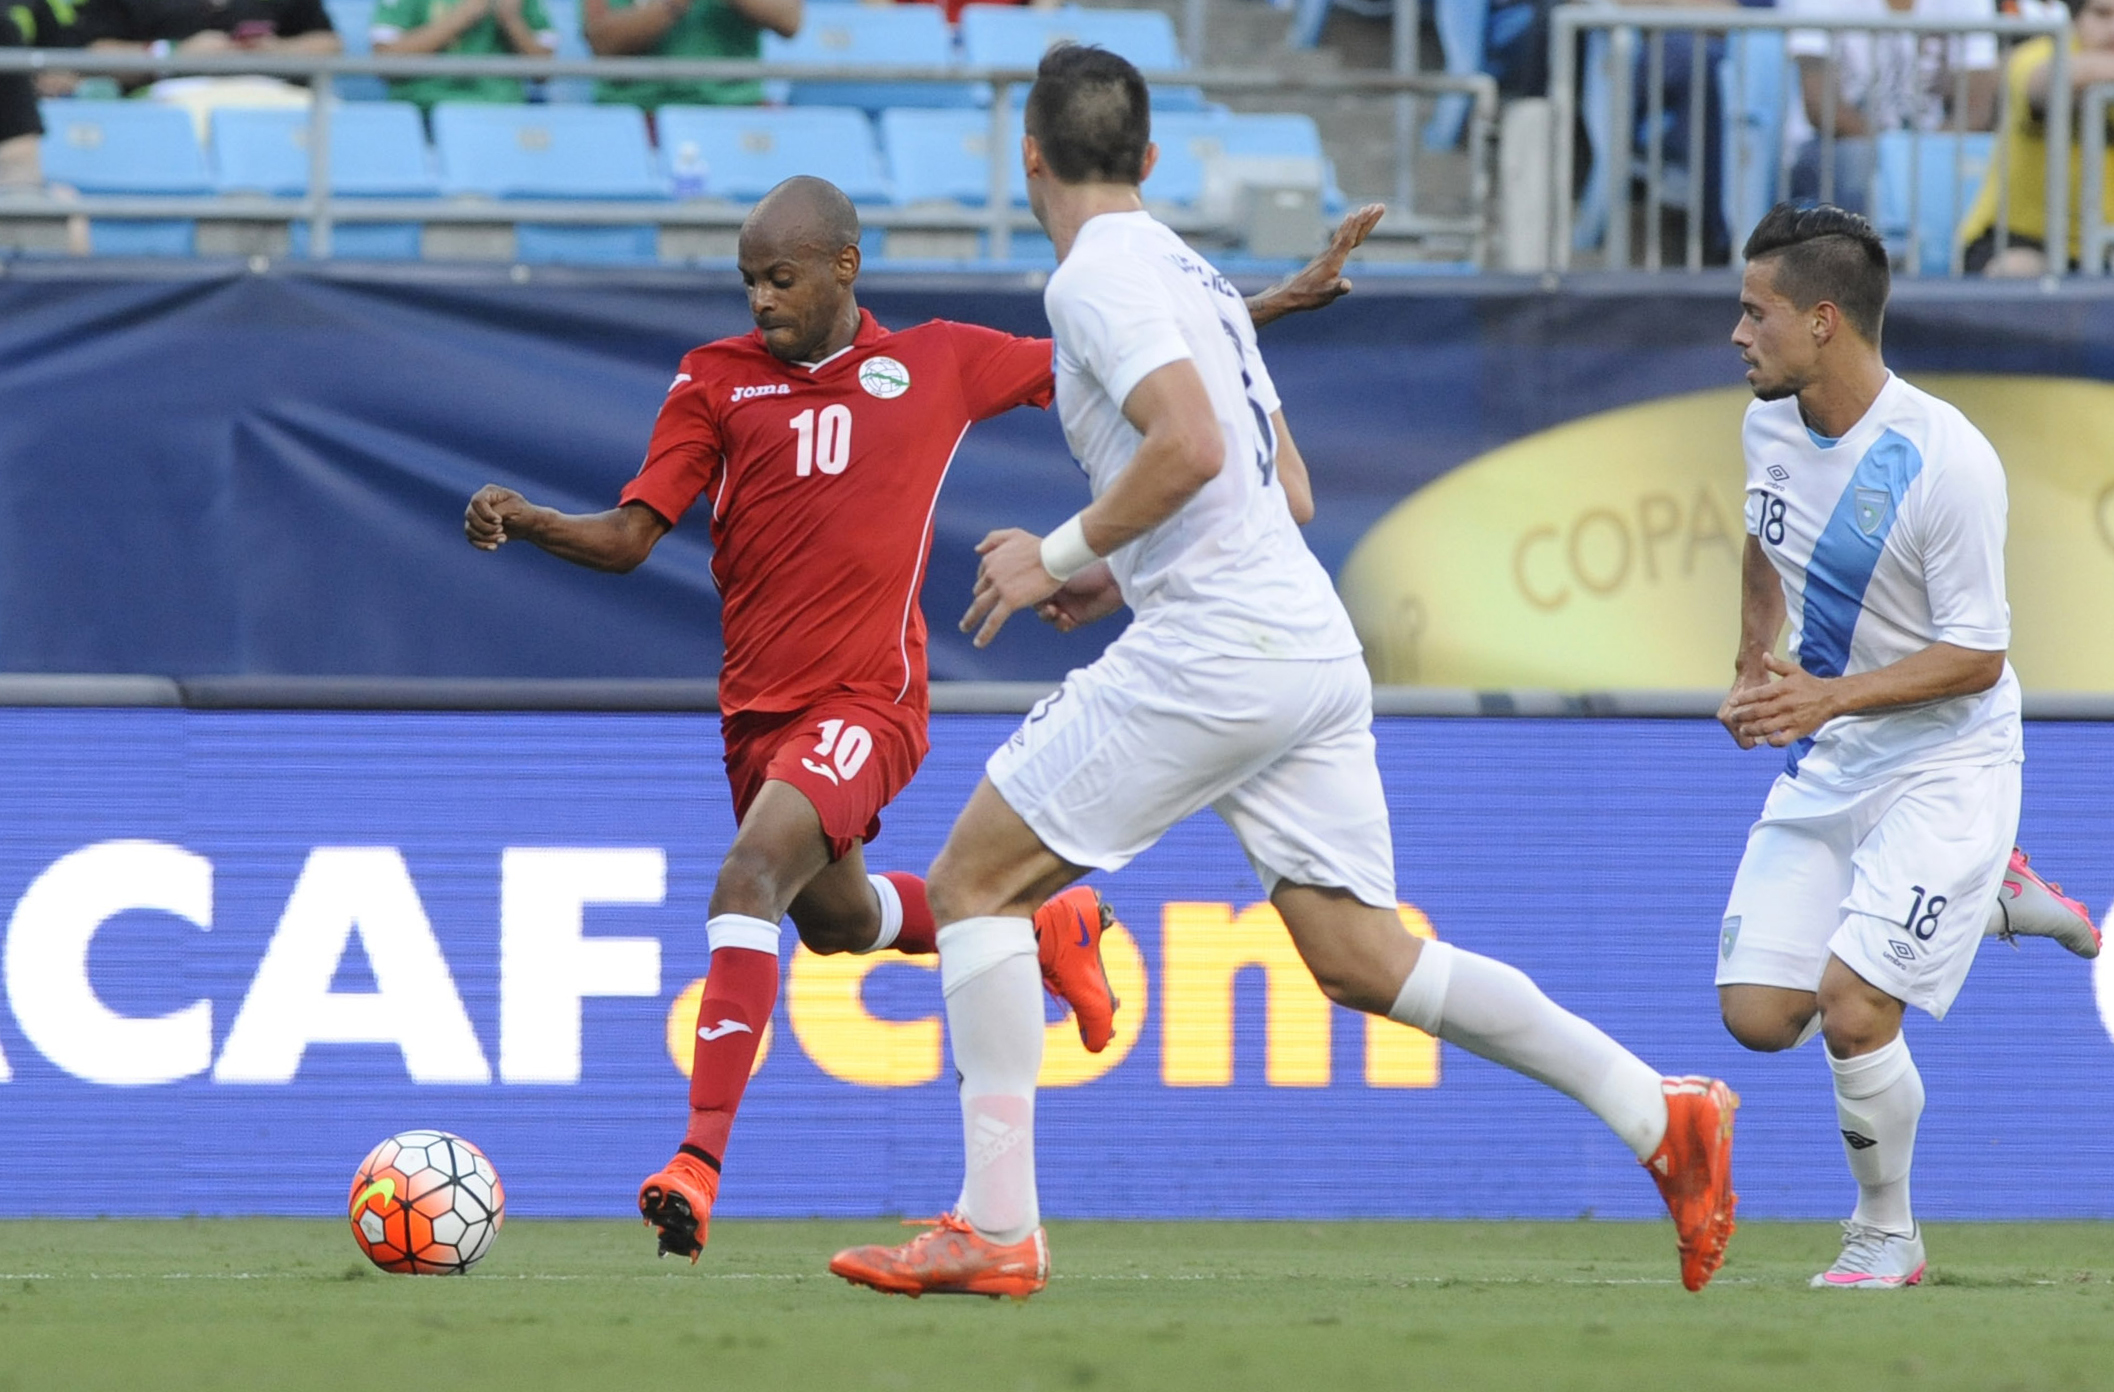 Ariel Martinez lines up a shot in the 2015 Gold Cup as a member of the Cuban National team.